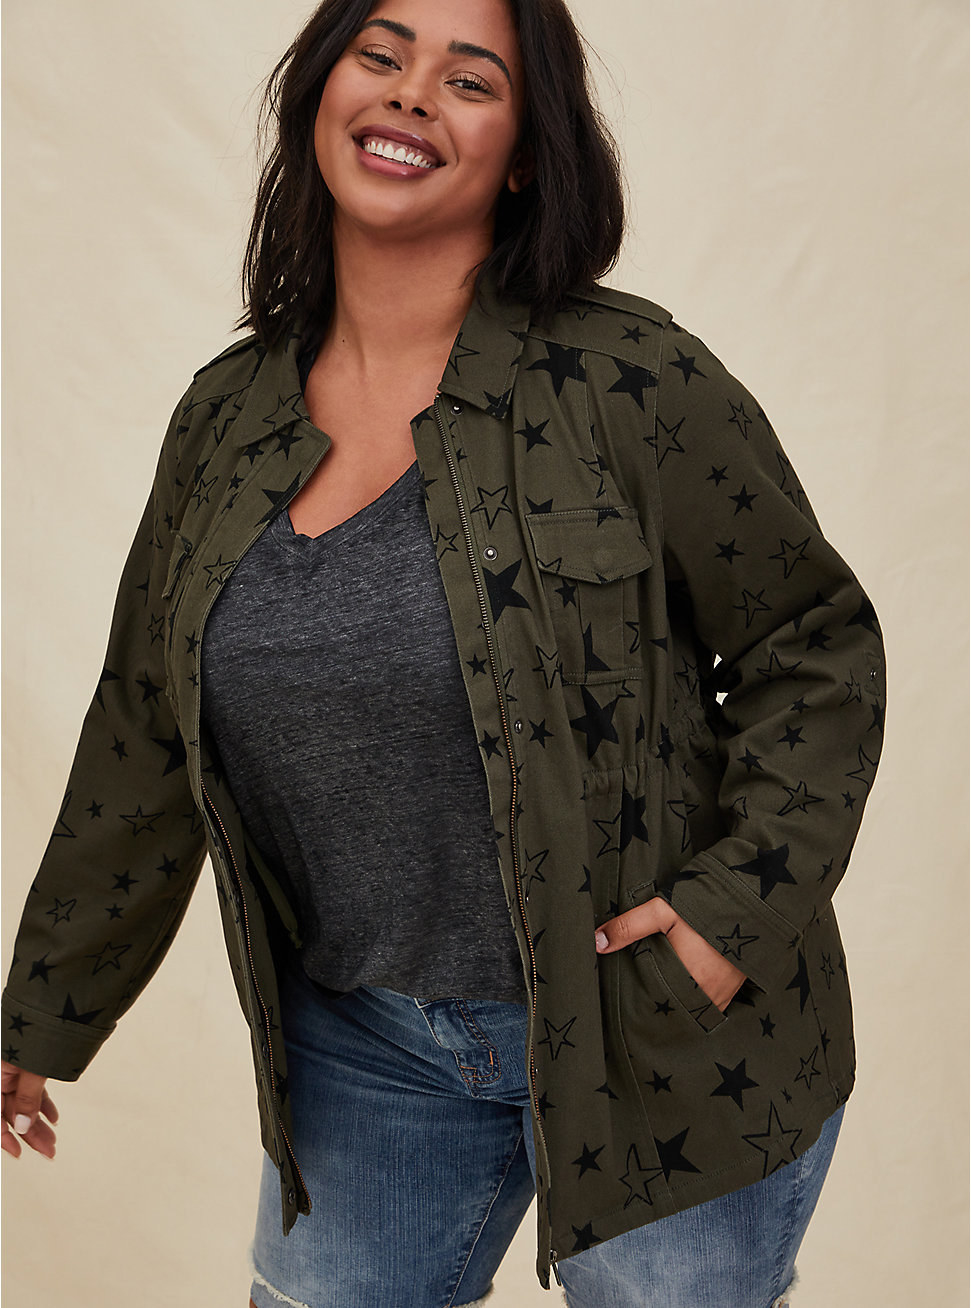 Model in the olive green, star-patterned jacket